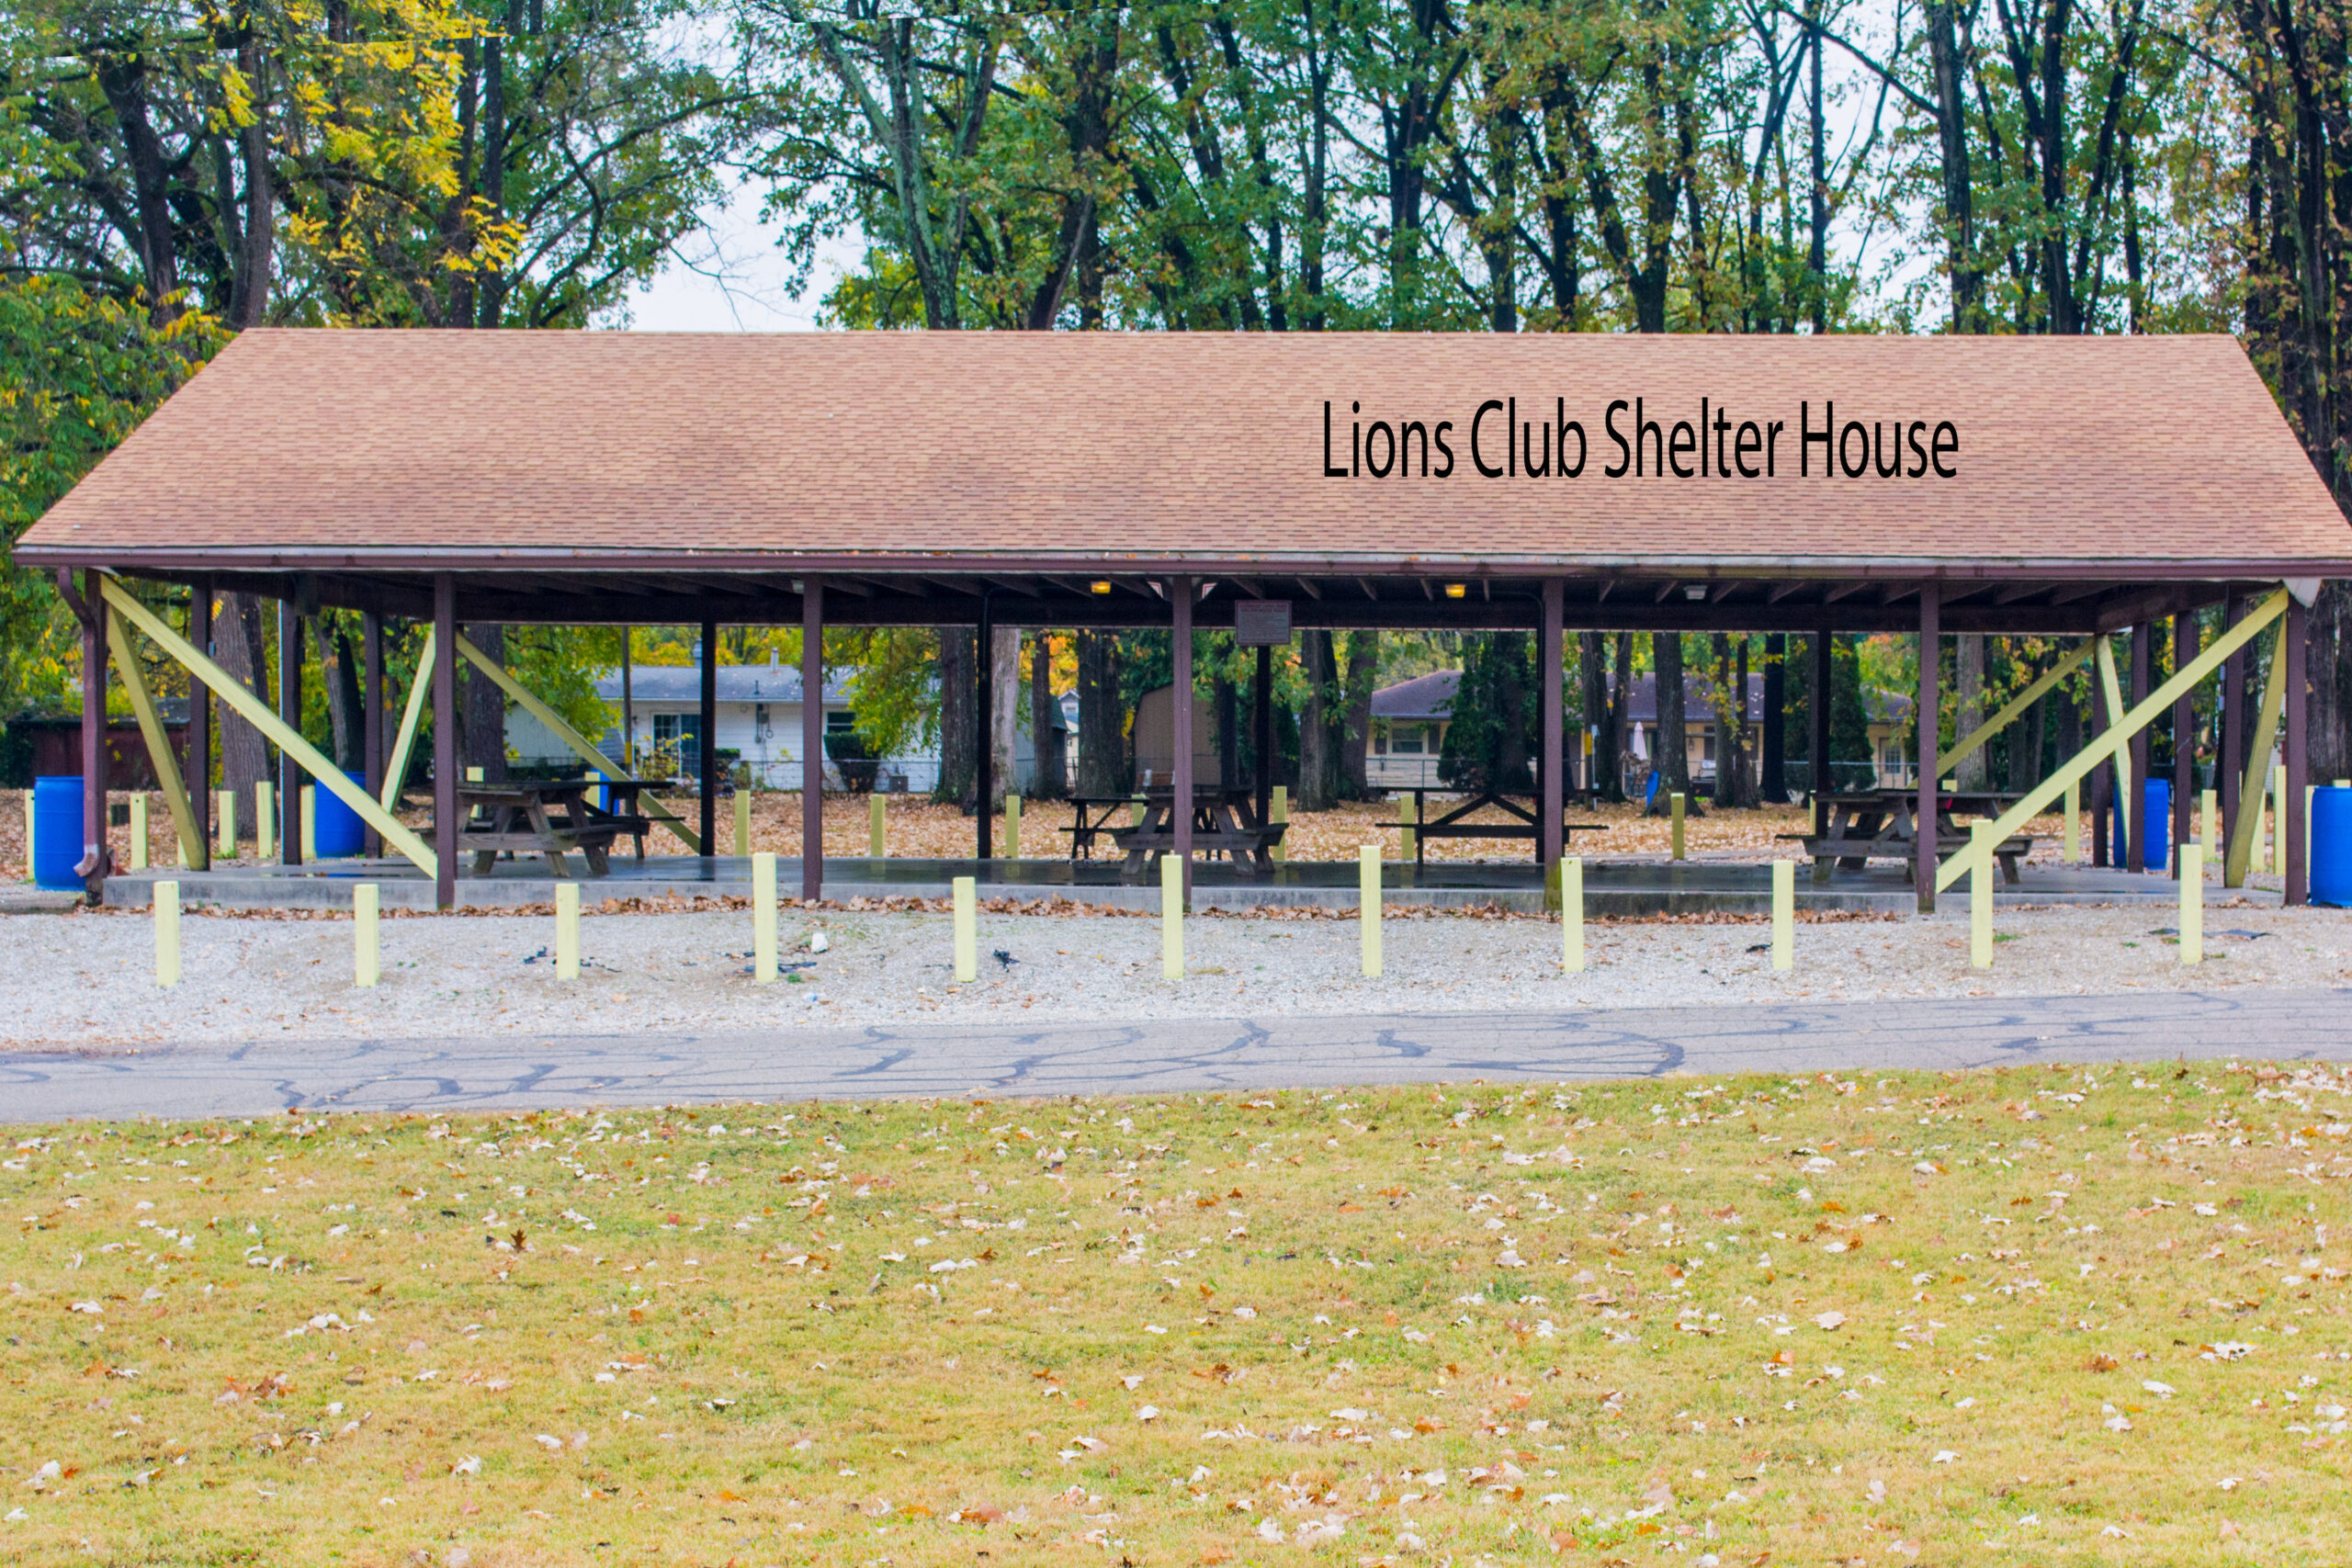 Lions Shelter House